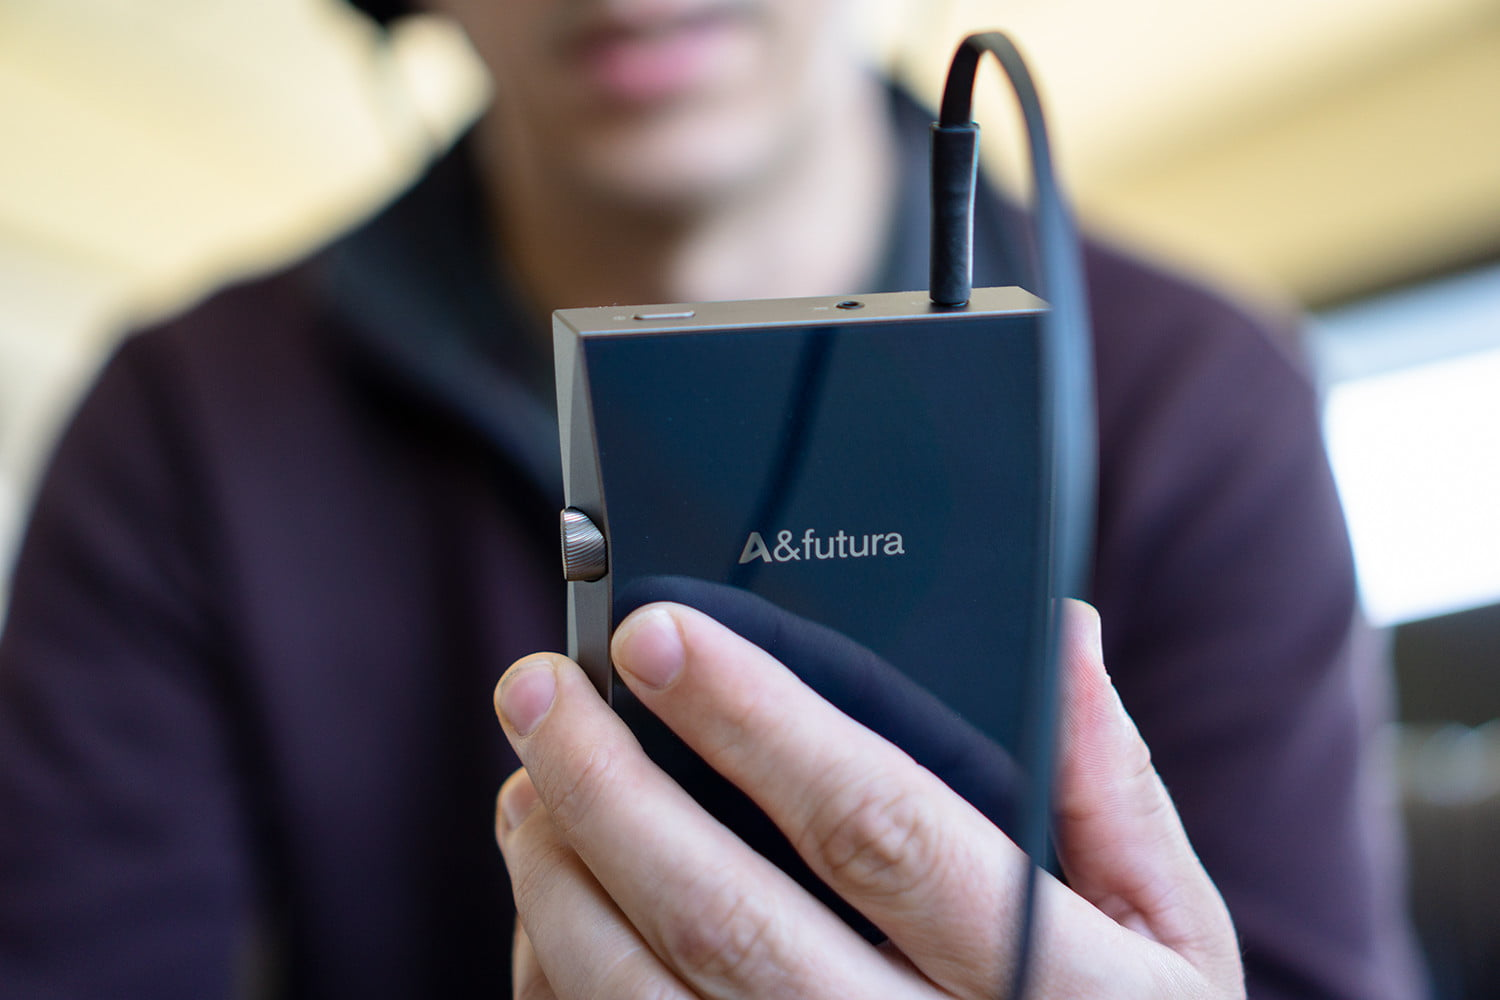 Astell & Kern's new A&futura SE100 hi-res player looks funny, sounds fantastic